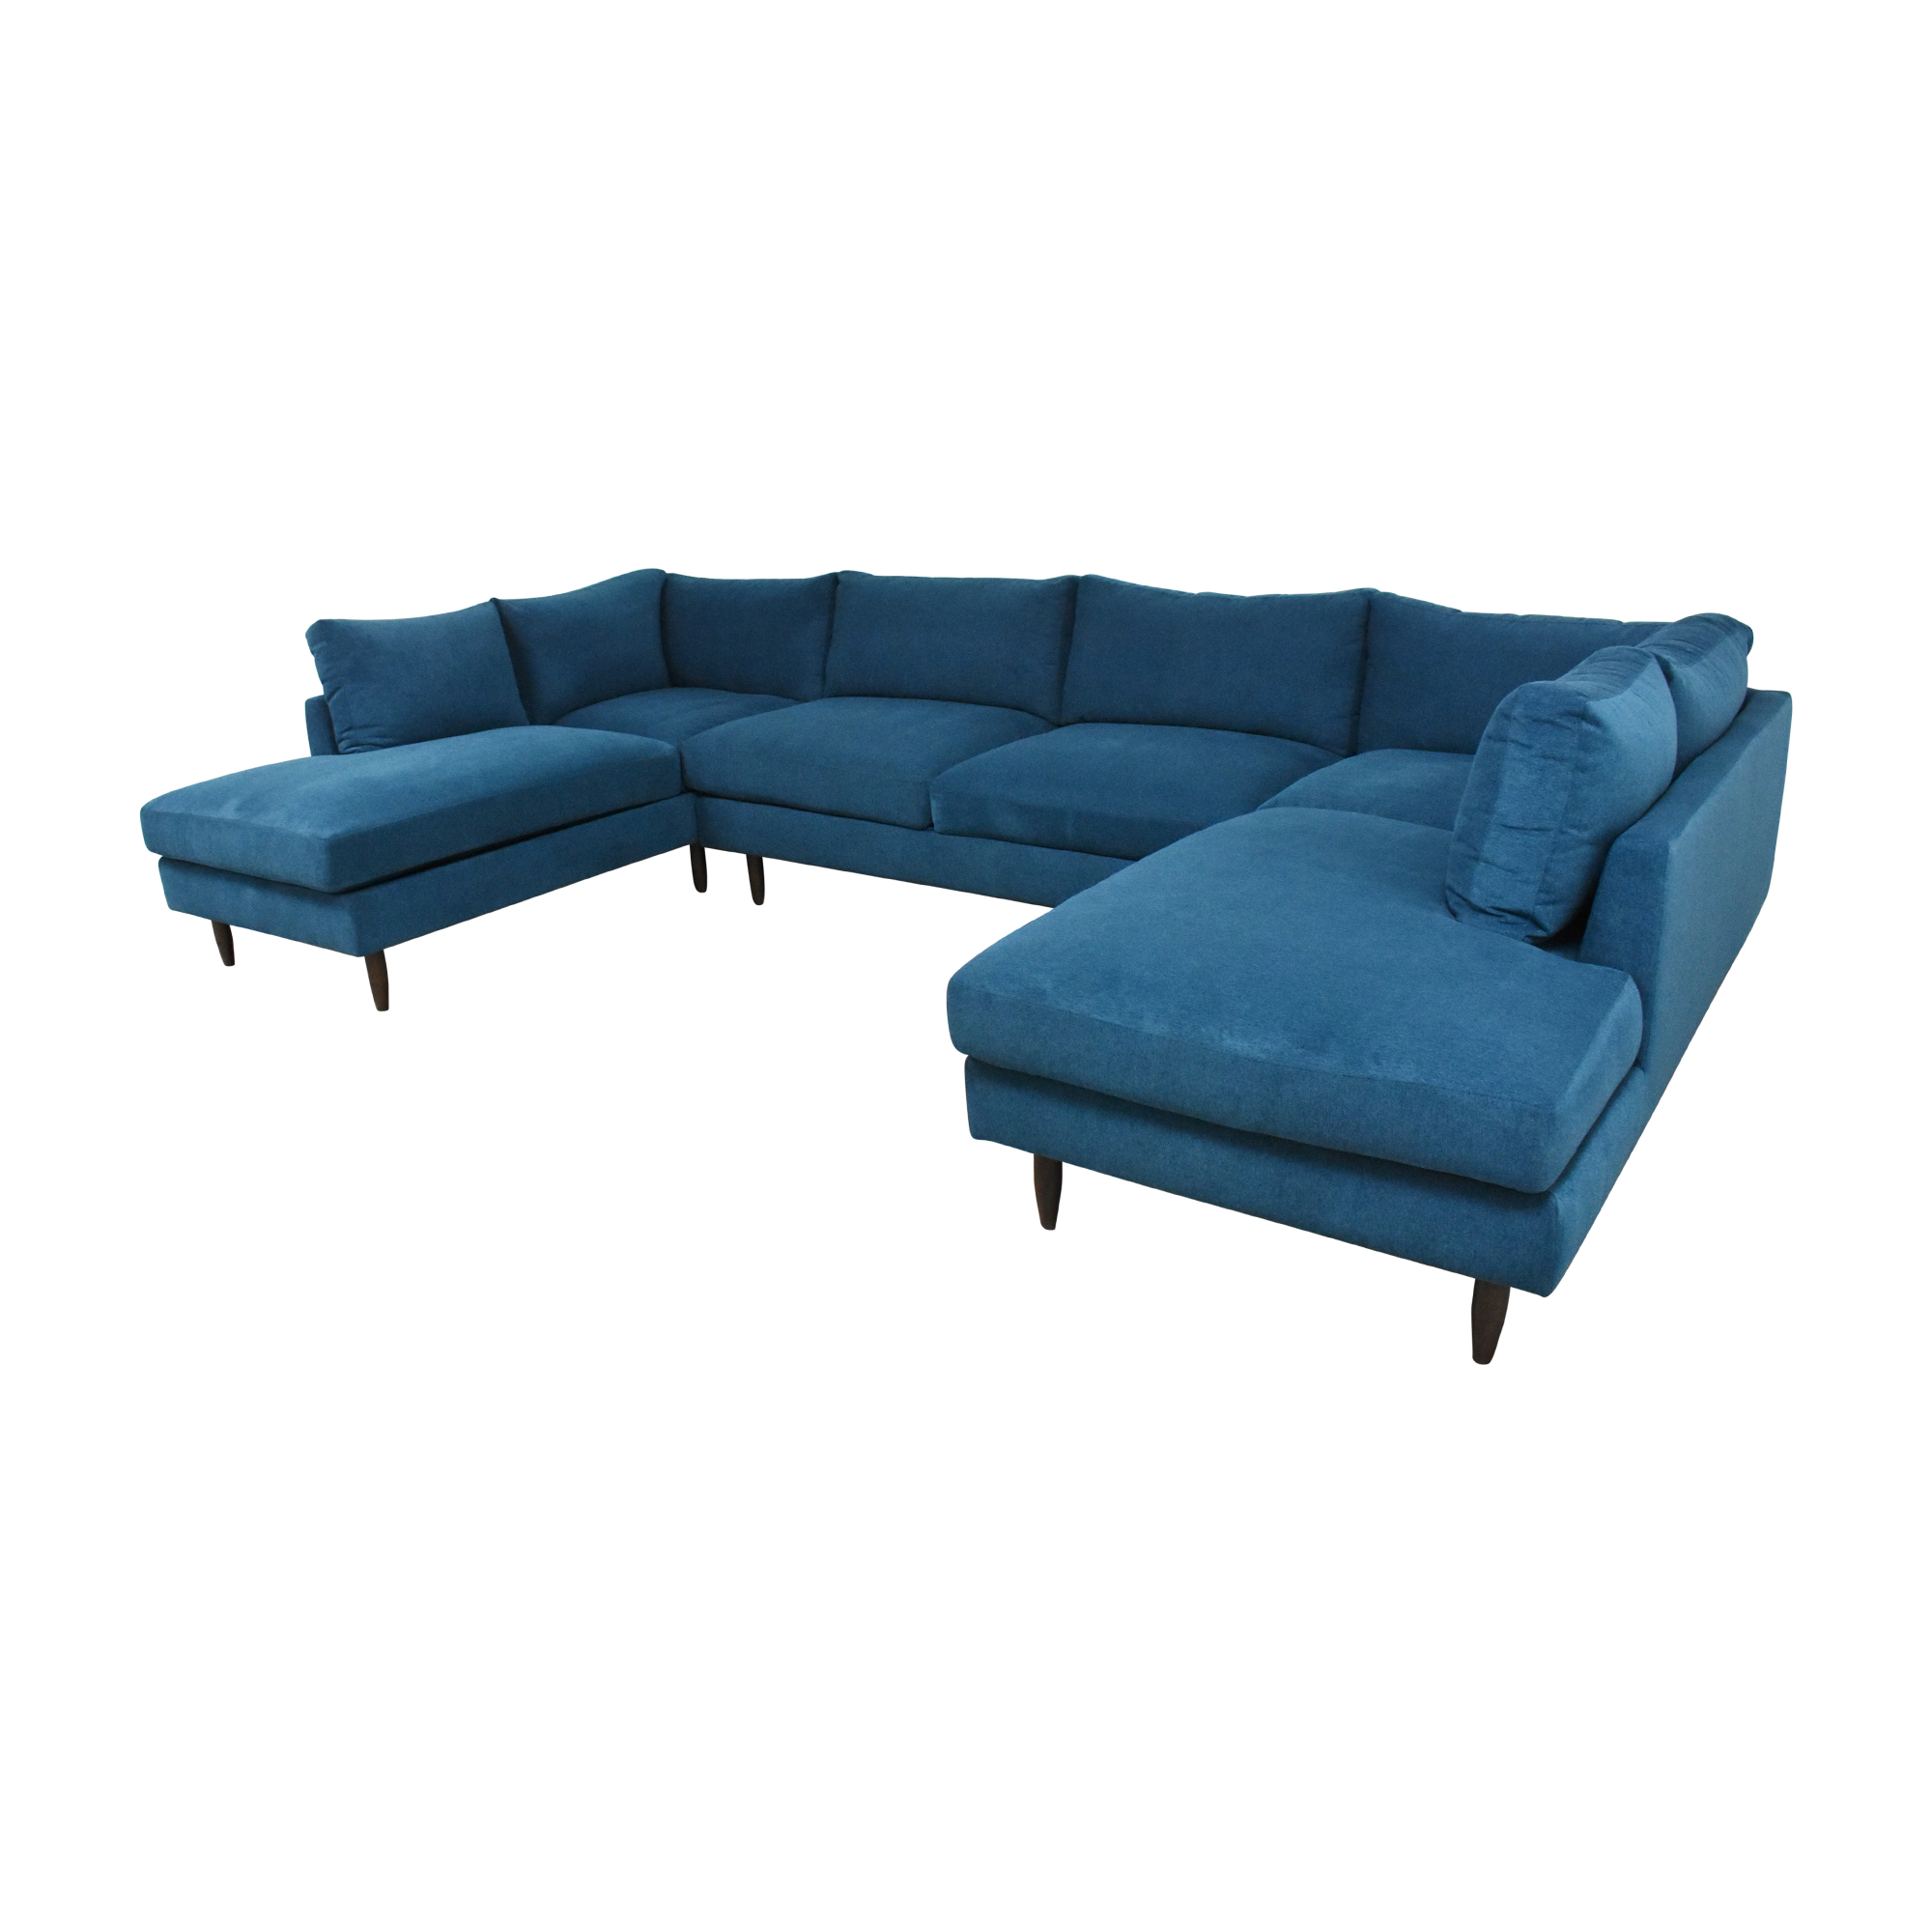 BenchMade Modern BenchMade Modern Crowd Pleaser Double Chaise Sectional U Sofa for sale